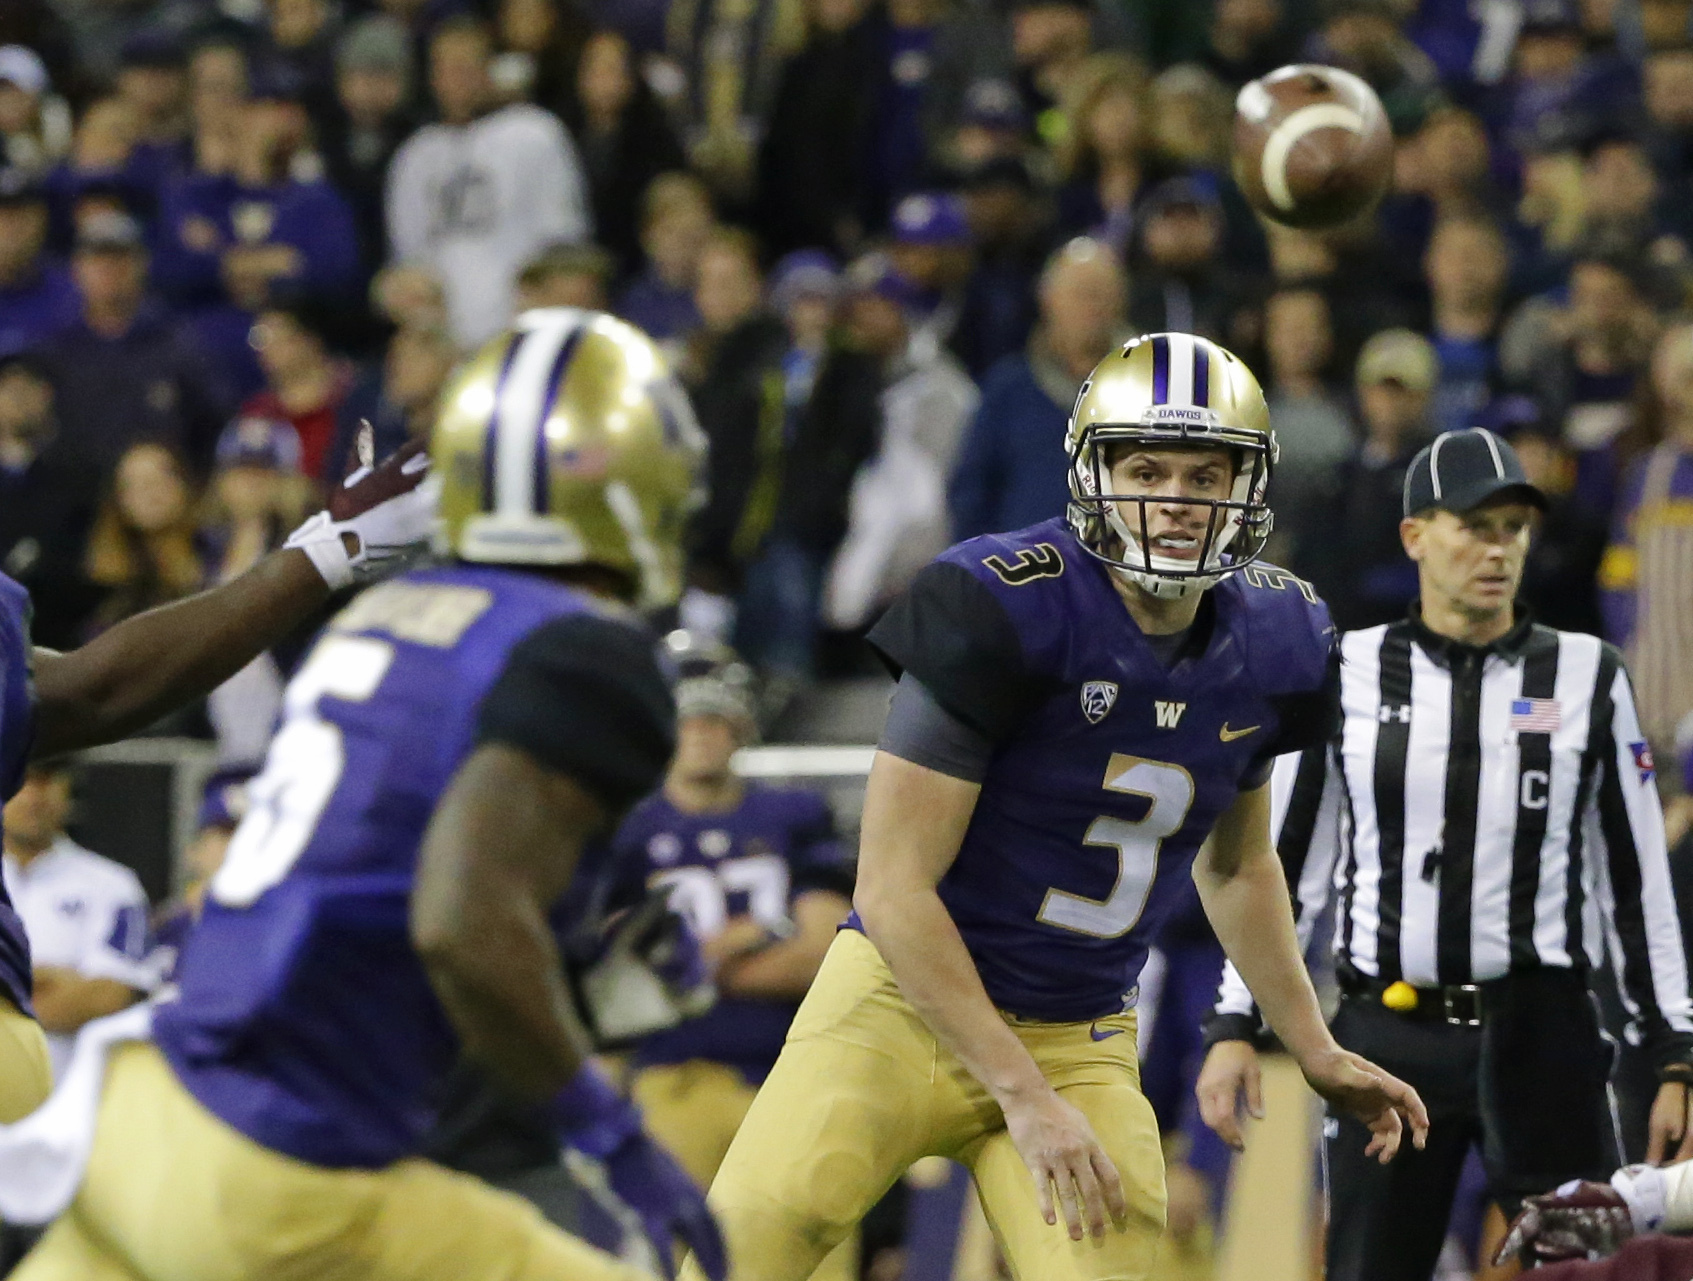 Washington quarterback Jake Browning (3) passes to wide receiver Chico McClatcher, left, in the second half of an NCAA college football game against Arizona State, Saturday, Nov. 19, 2016, in Seattle. Washington beat Arizona State 44-18. (AP Photo/Ted S.